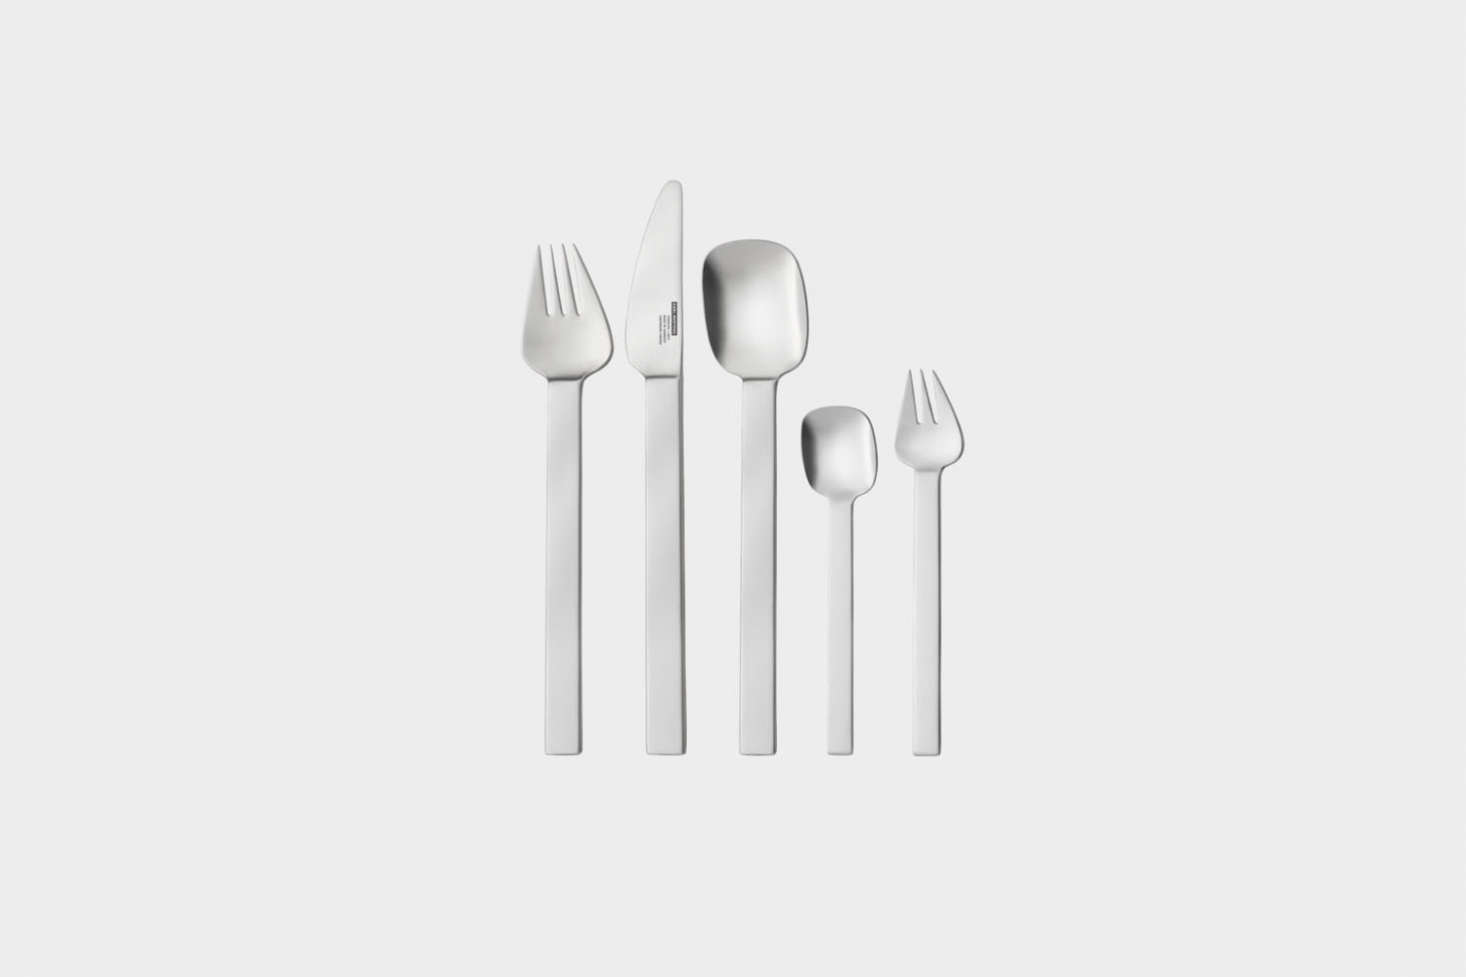 The Carl Mertens Senso Sky Flatware is sold as a 30-piece set for €3.